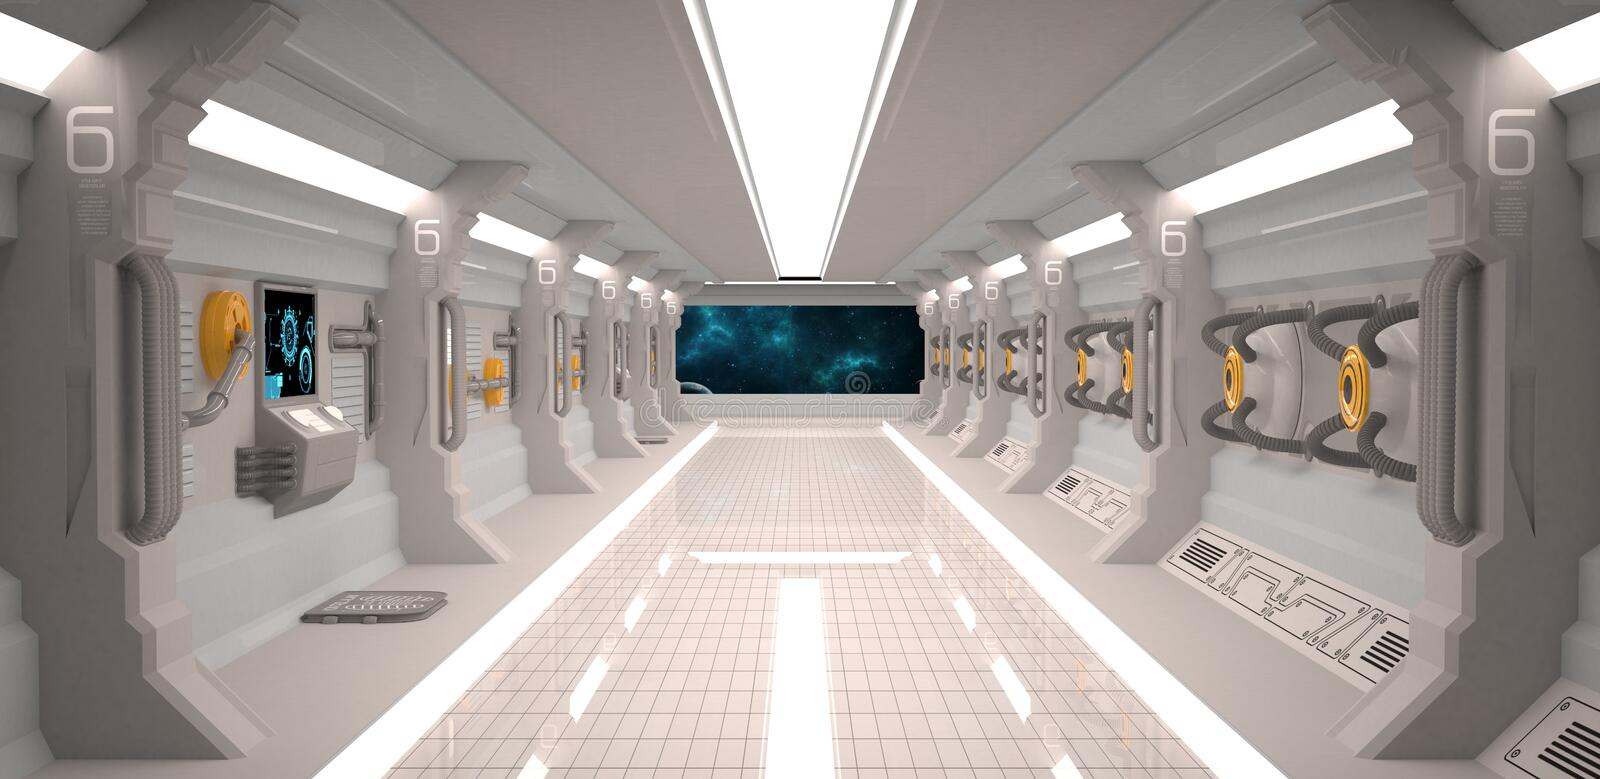 Futuristic design spaceship interior with metal floor and light panels royalty free illustration